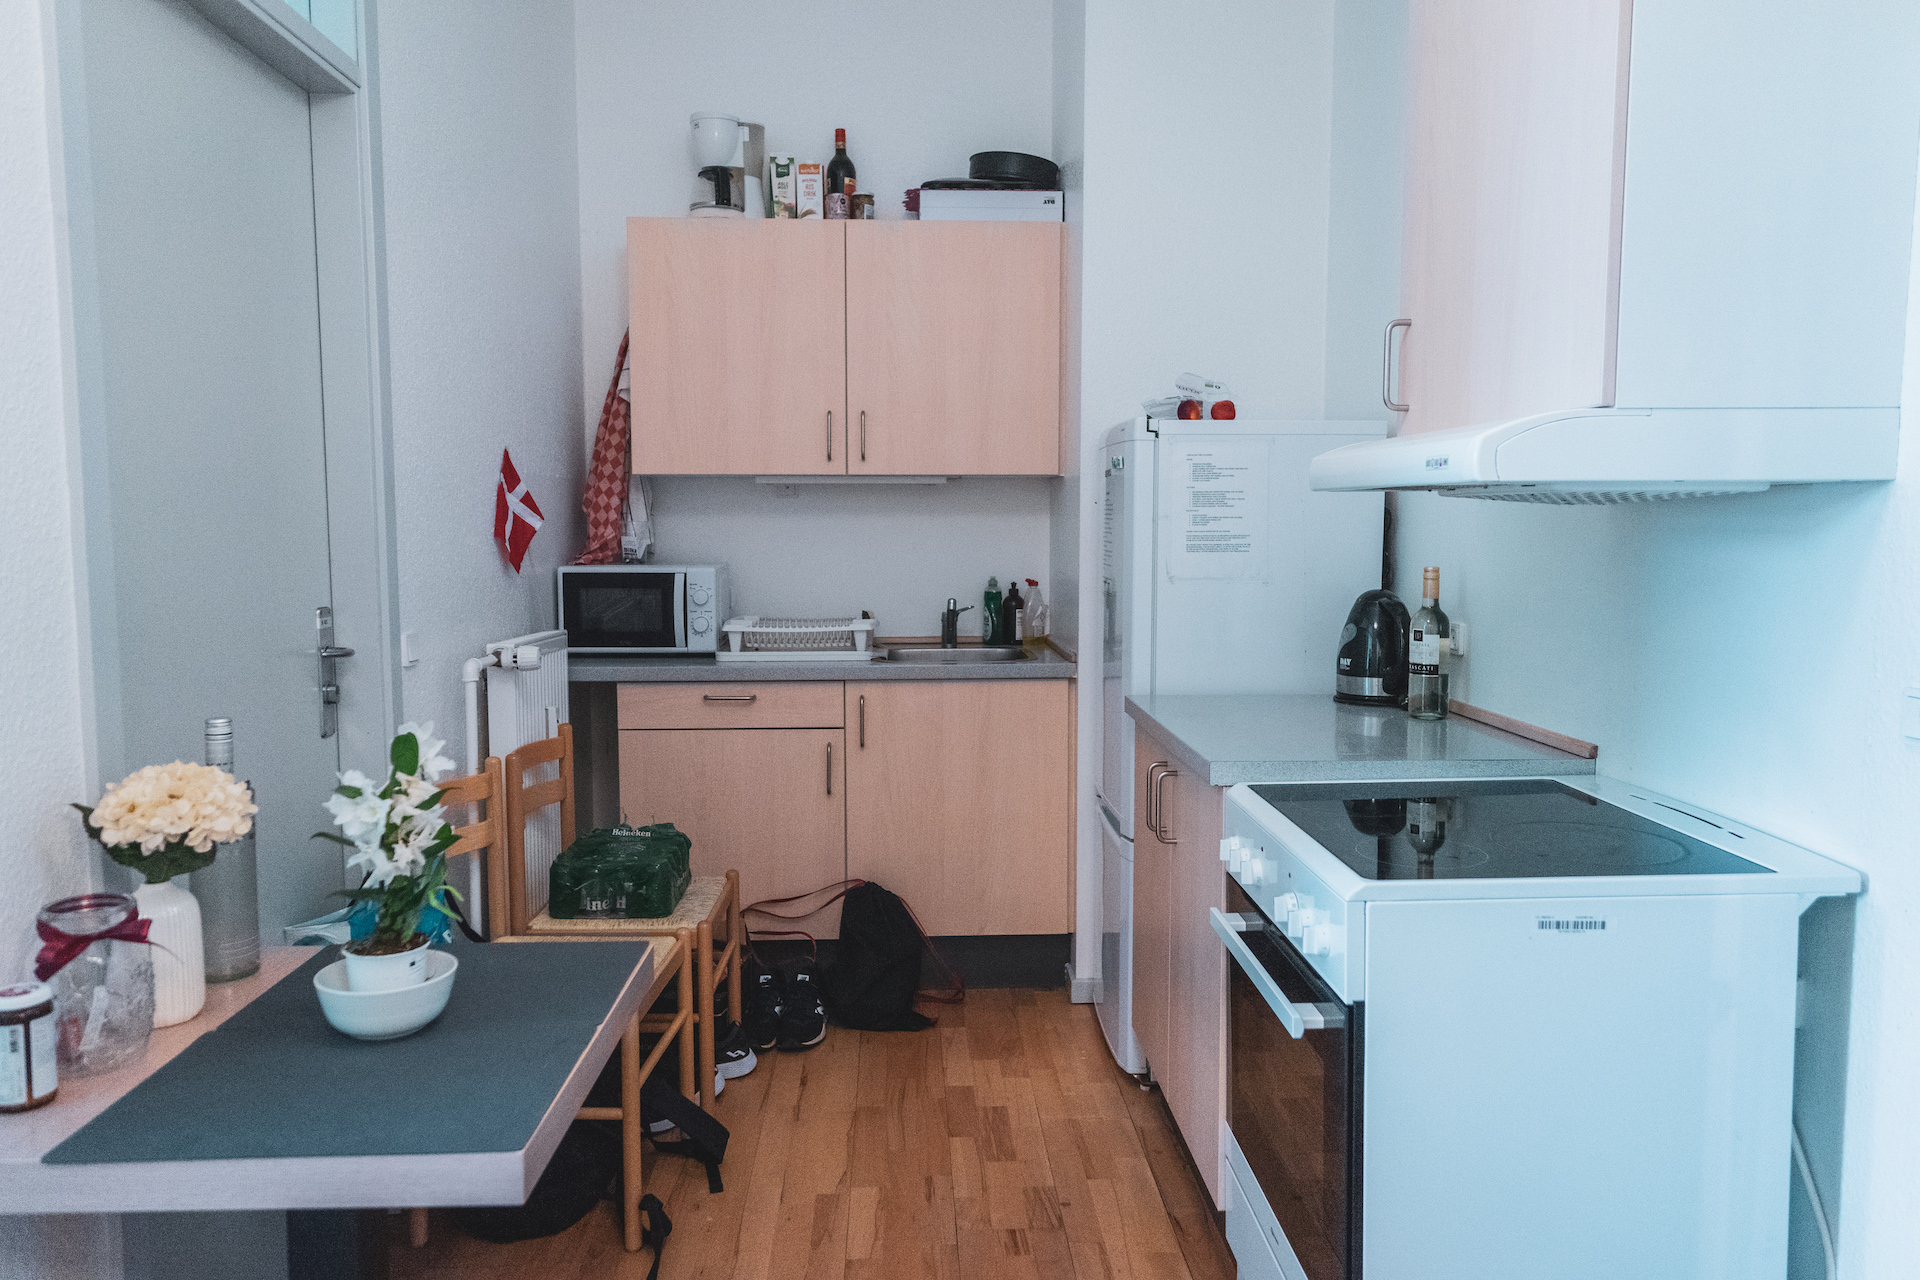 Example of a kitchen in a student apartment.